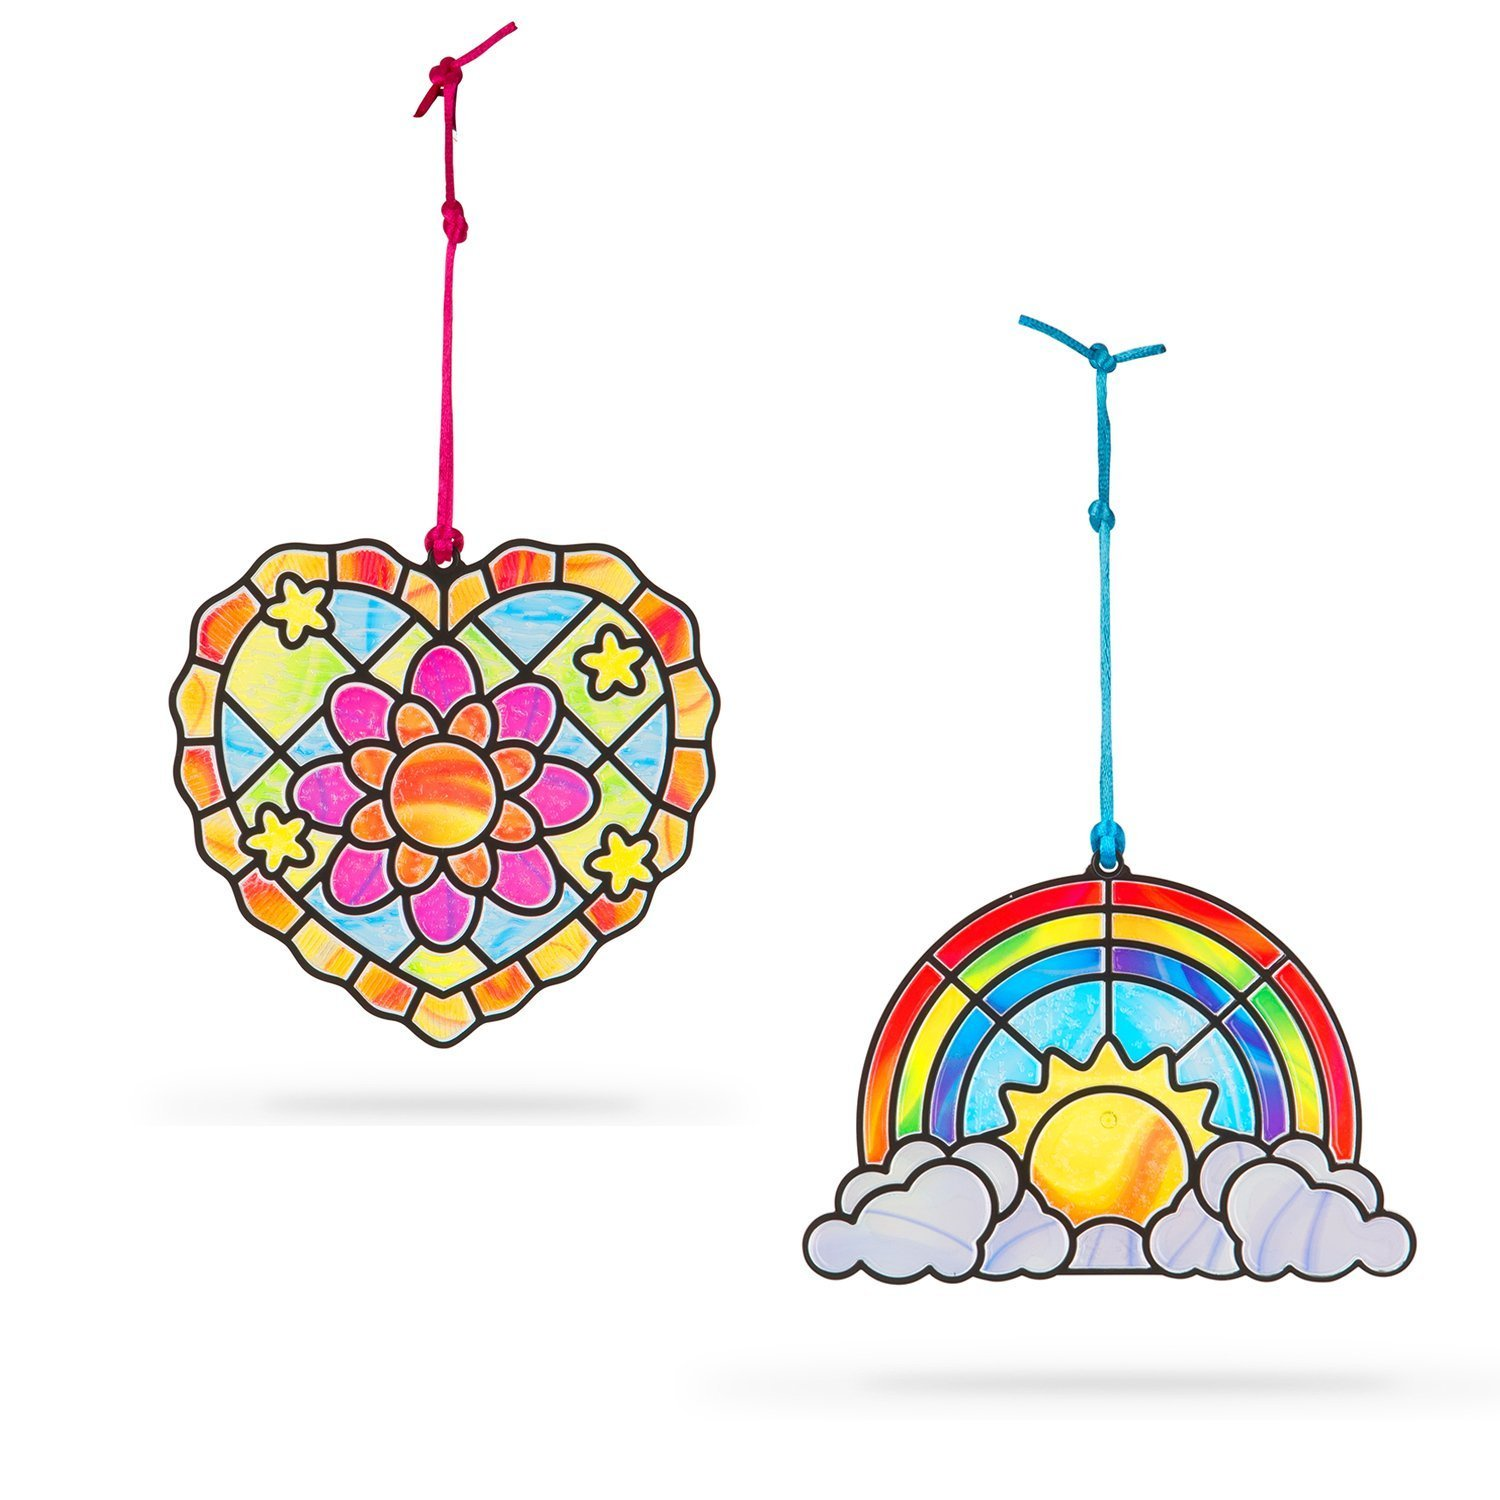 STAINED GLASS HEART AND RAINBOW